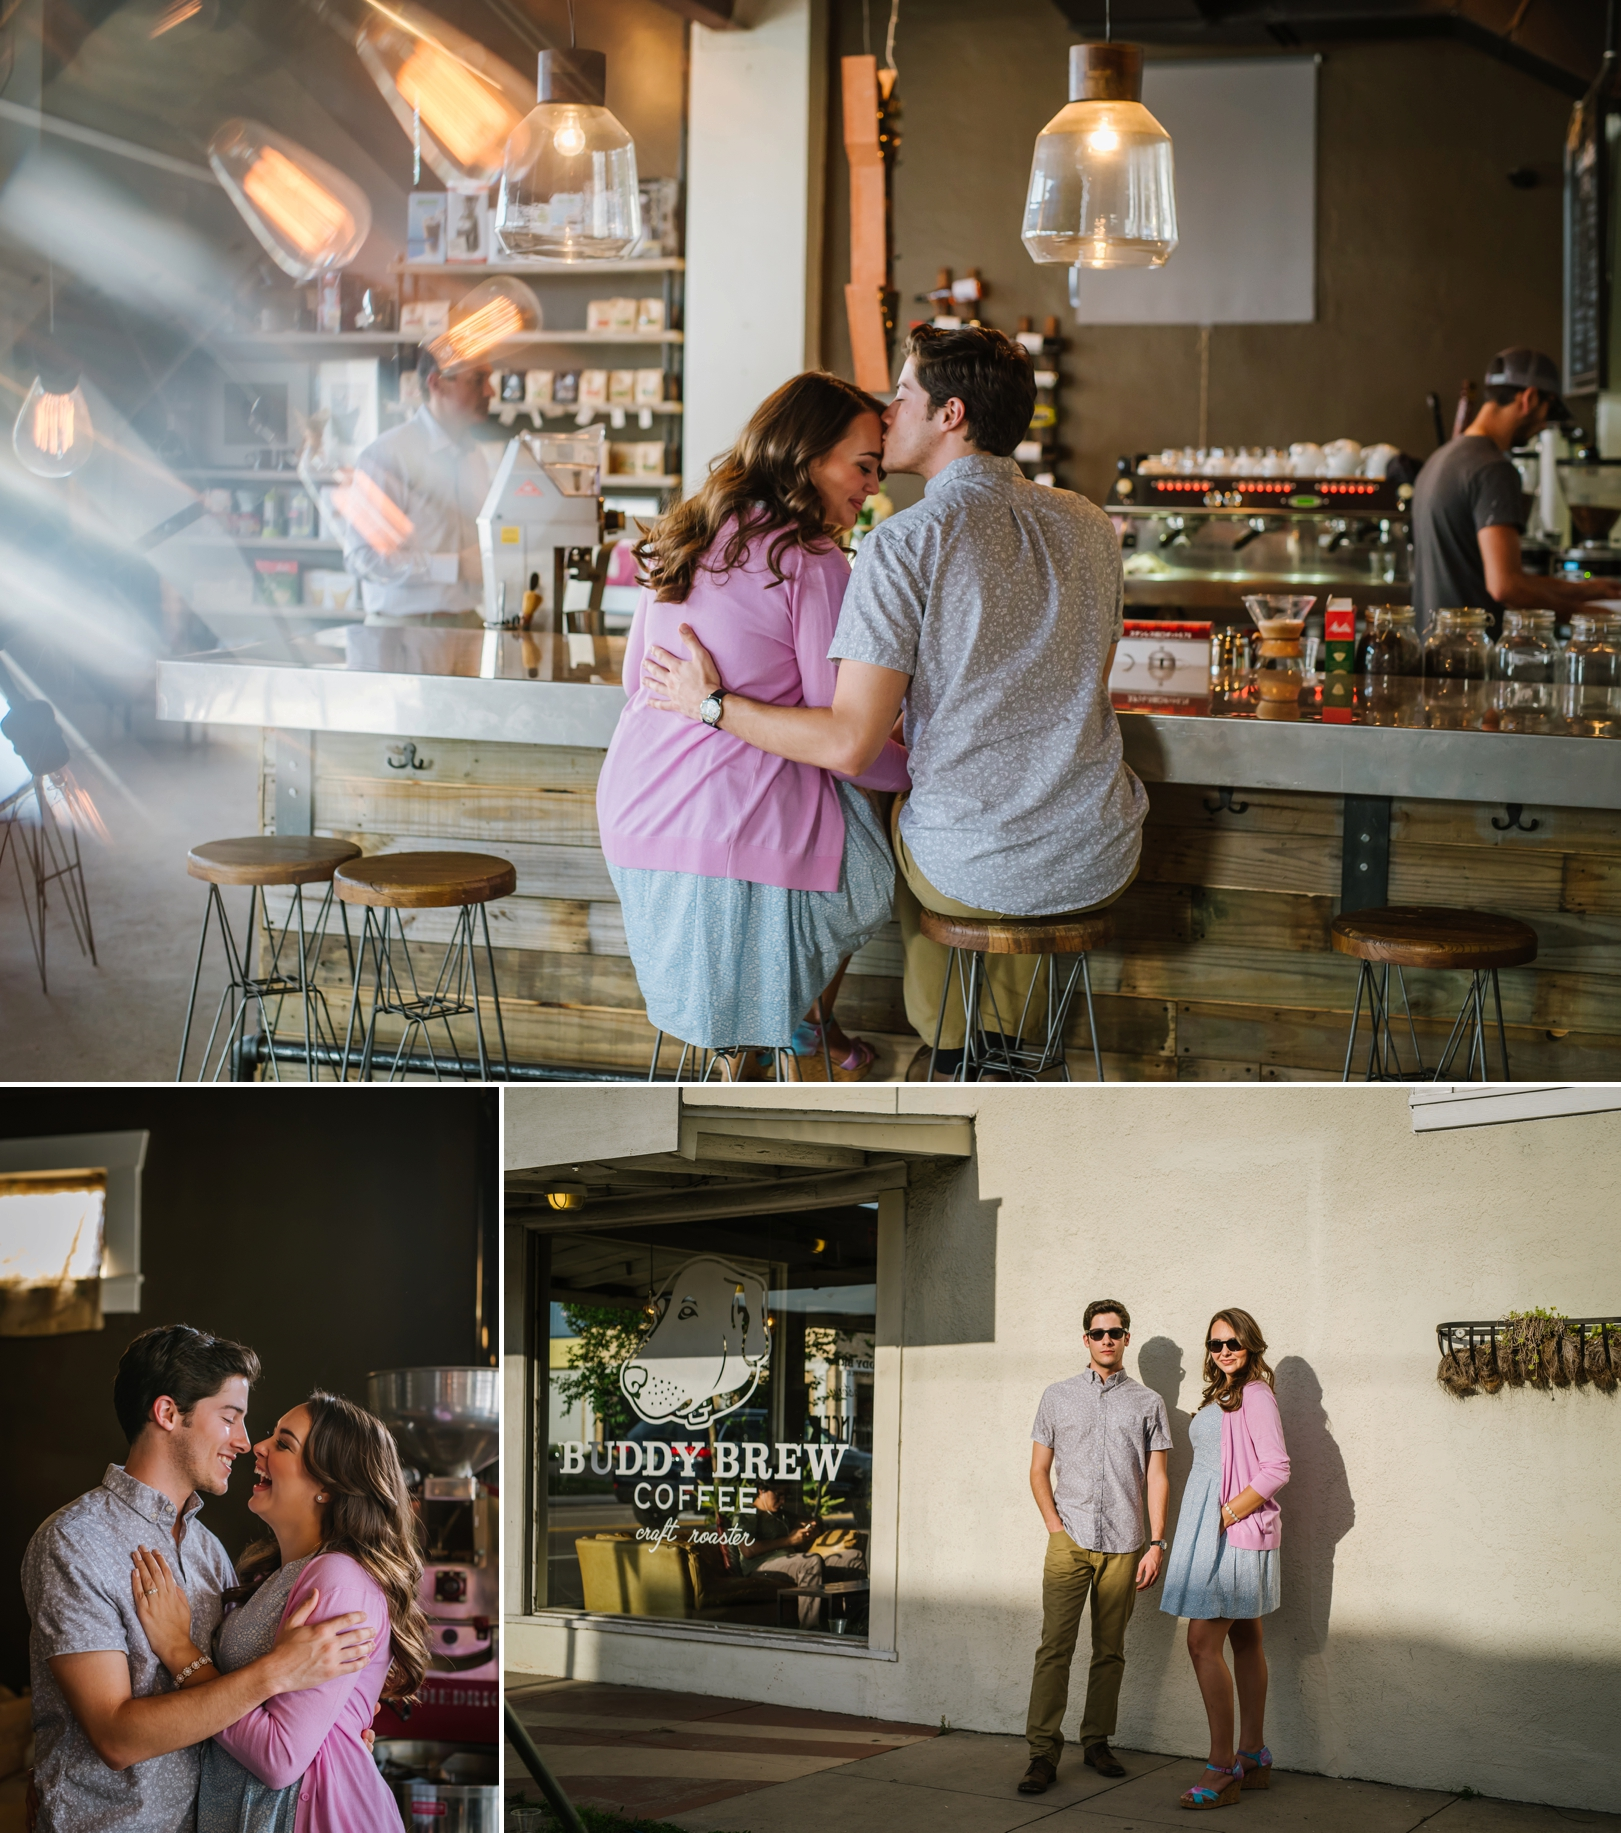 ashlee-hamon-photography-tampa-buddy-brew-coffee-shop-engagement_0003.jpg